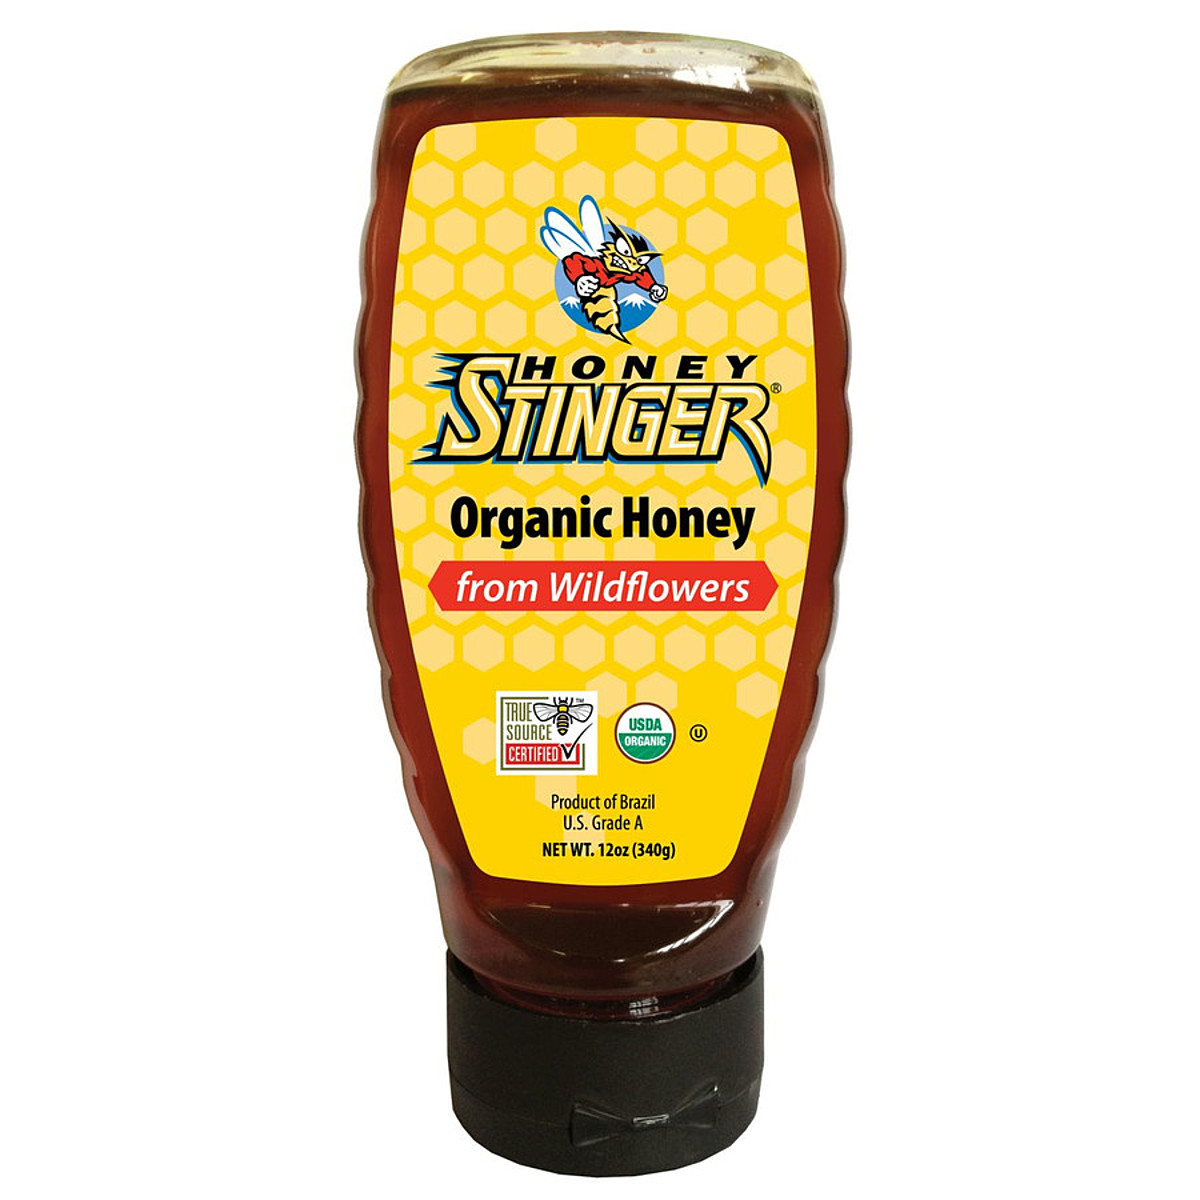 Honey Stinger Organic Wildflower Honey